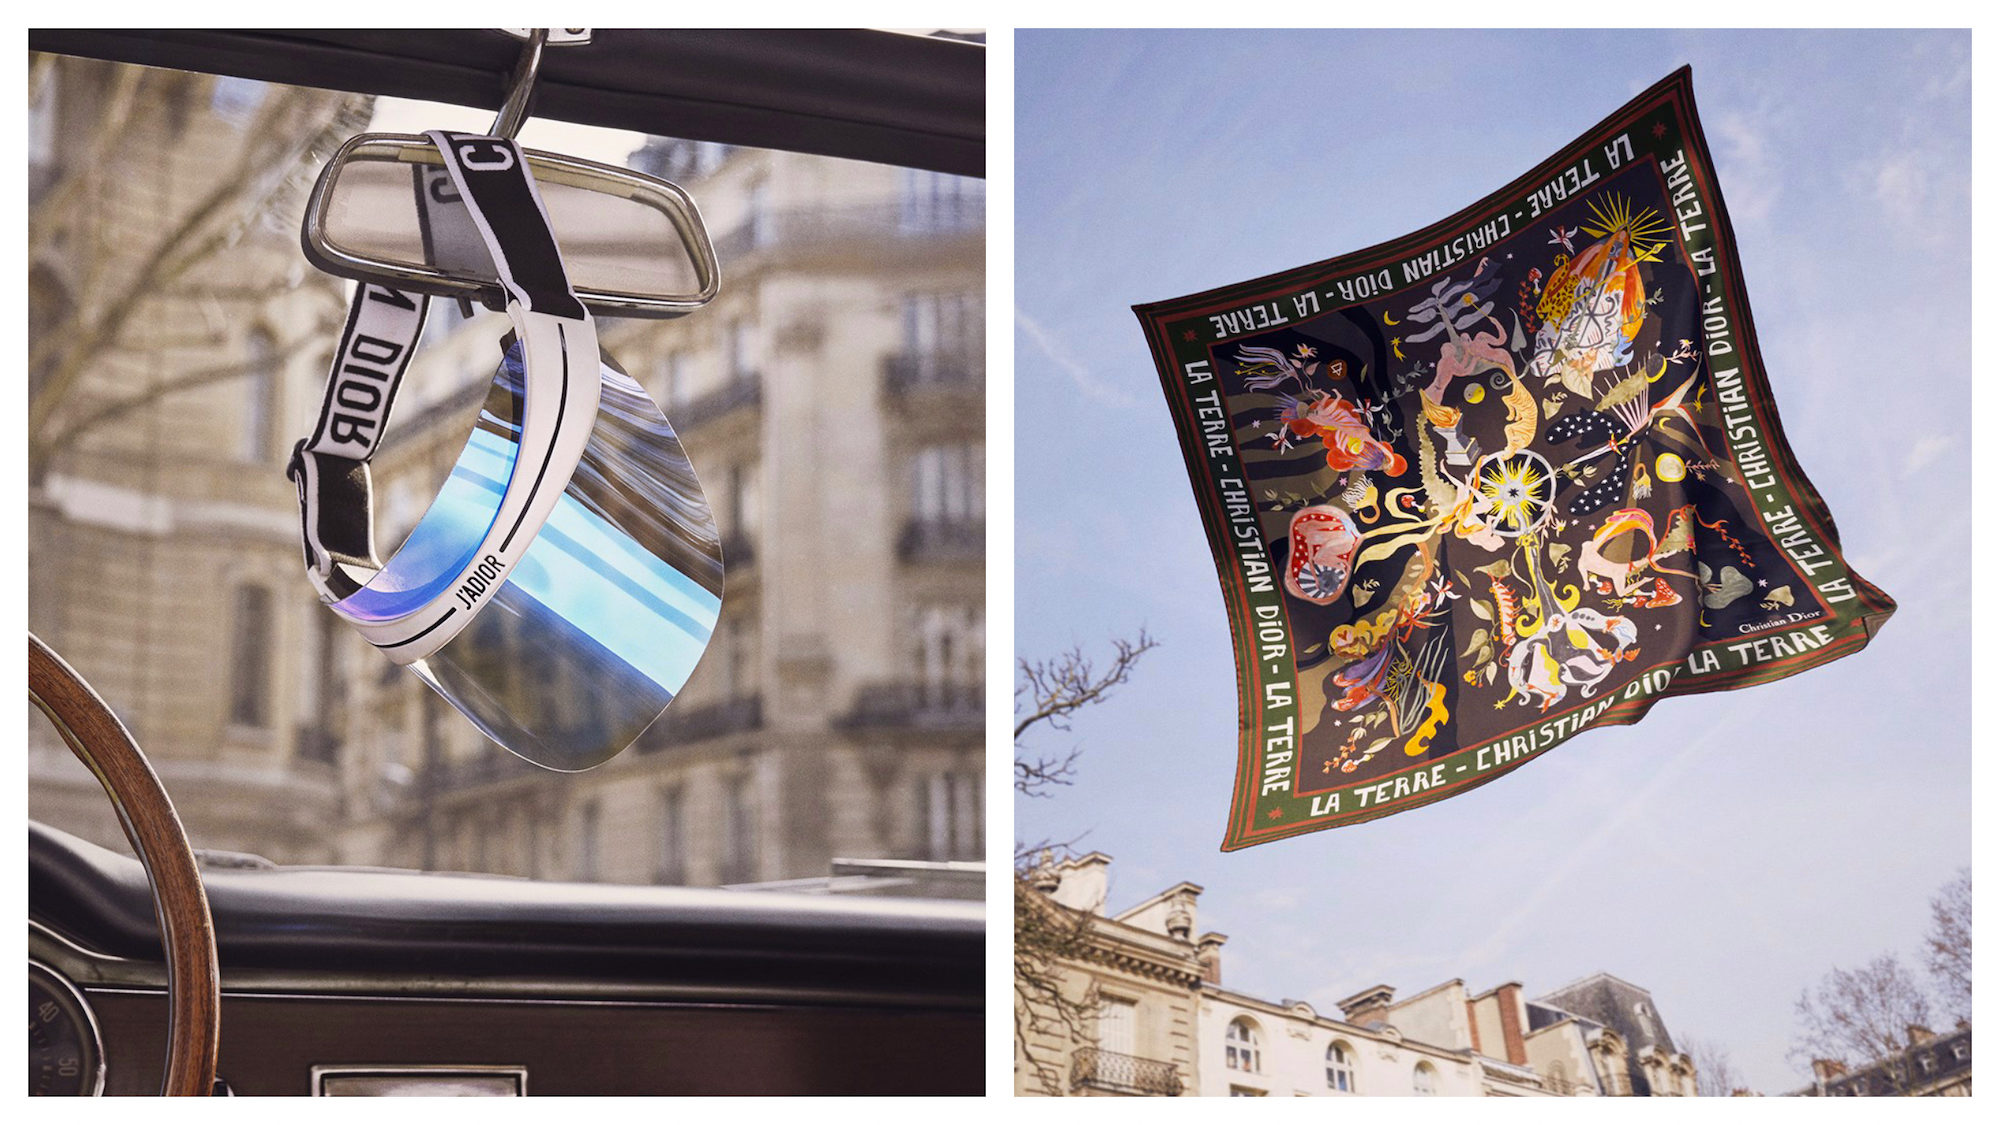 Get the right Paris fashion accessories lilke this retro Dior cap hanging on the mirror of a convertible car (left) or this silk printed scarf (right).